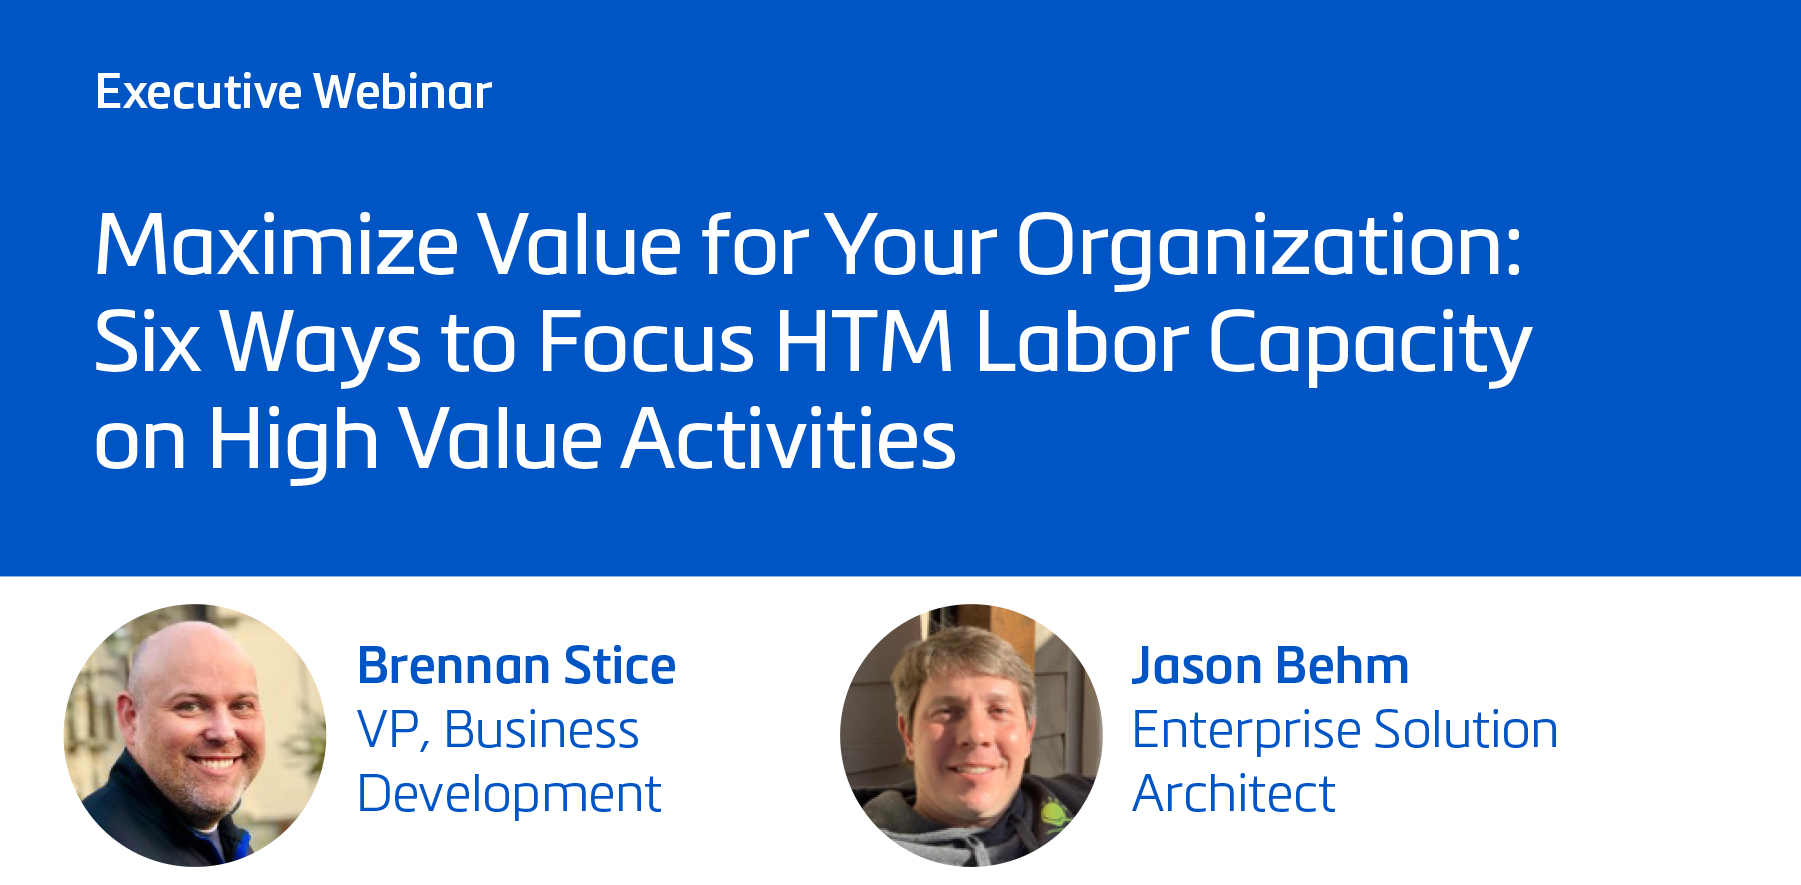 Maximize Value for Your Organization: Six Ways to Focus HTM Labor Capacity on High Value Activities